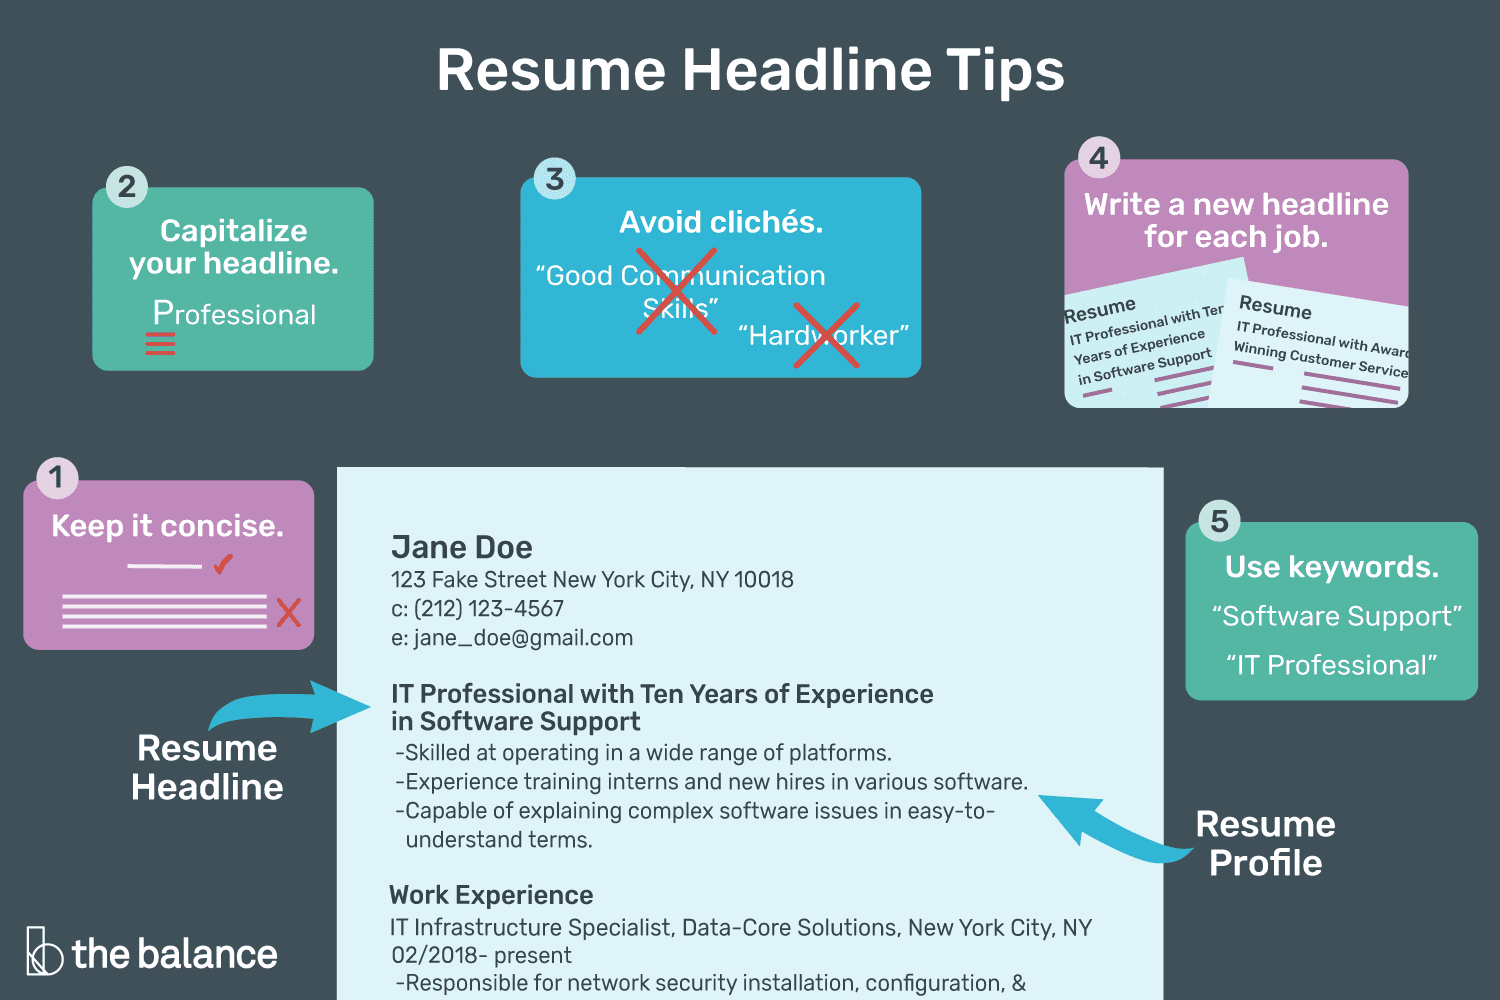 How to Write a Resume Headline With Examples Job resume